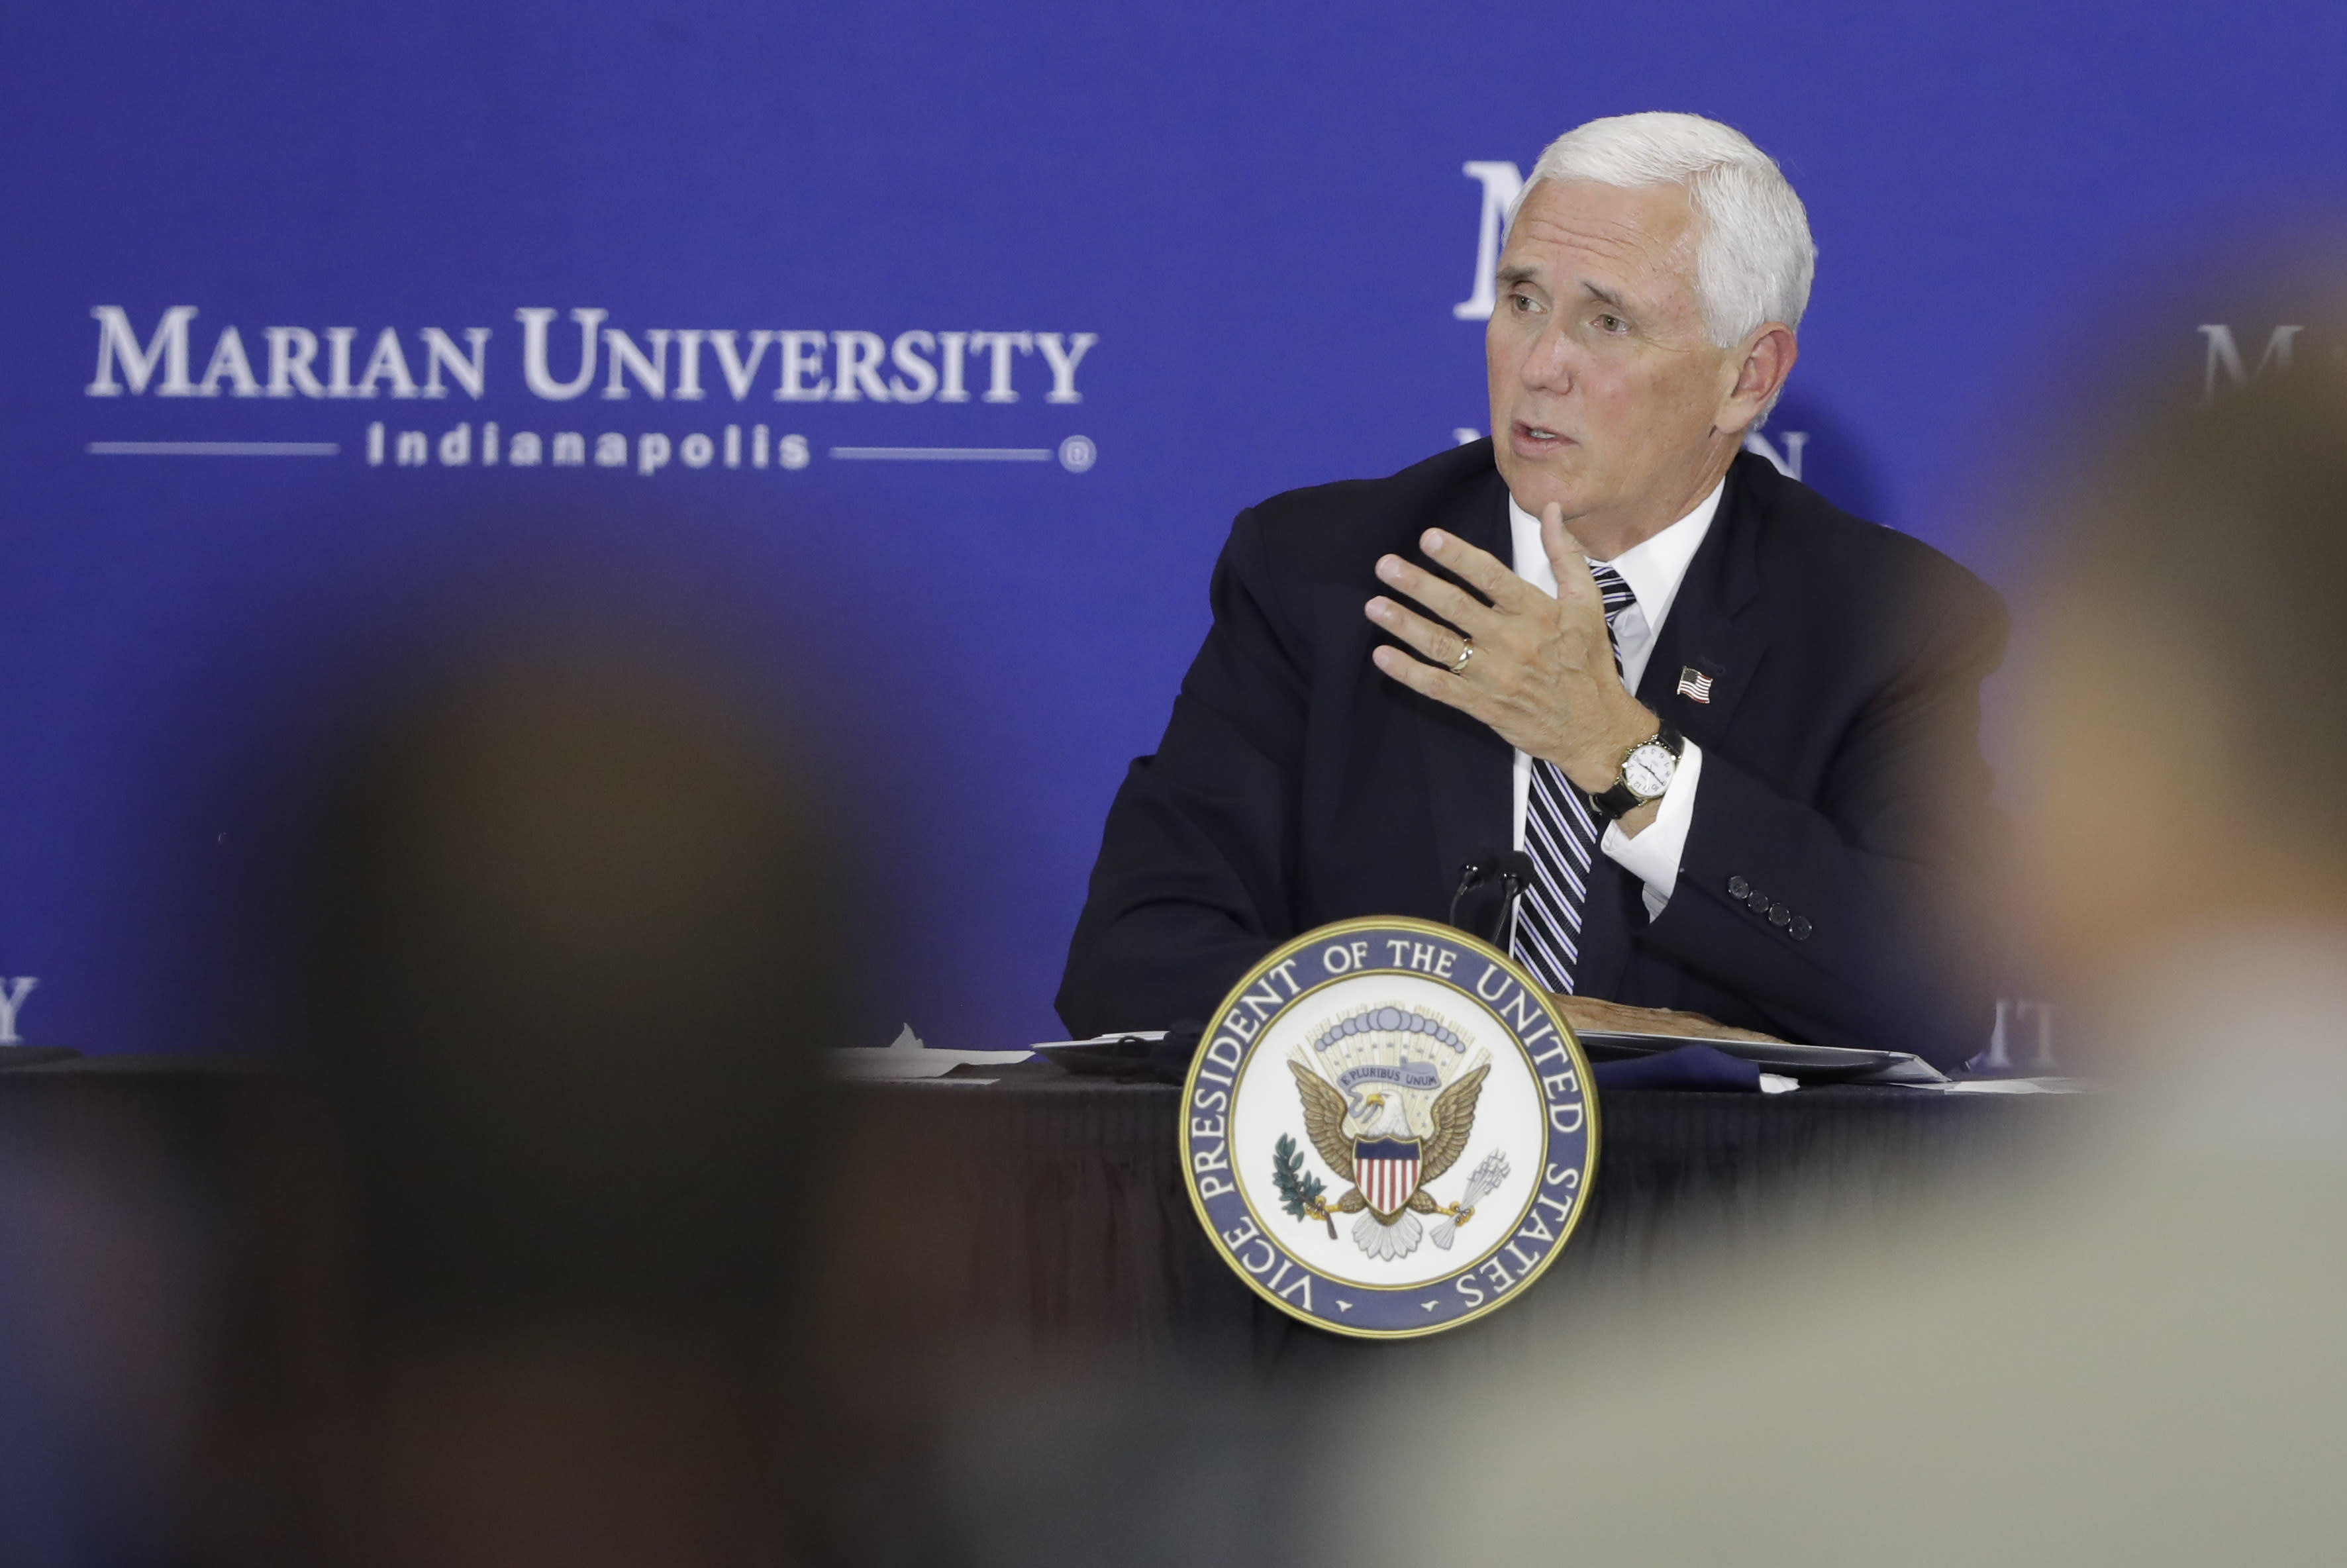 Vice President Mike Pence speaks during a meeting with higher education leaders on safely reopening schools, Friday, July 24, 2020, in Indianapolis. (AP Photo/Darron Cummings)